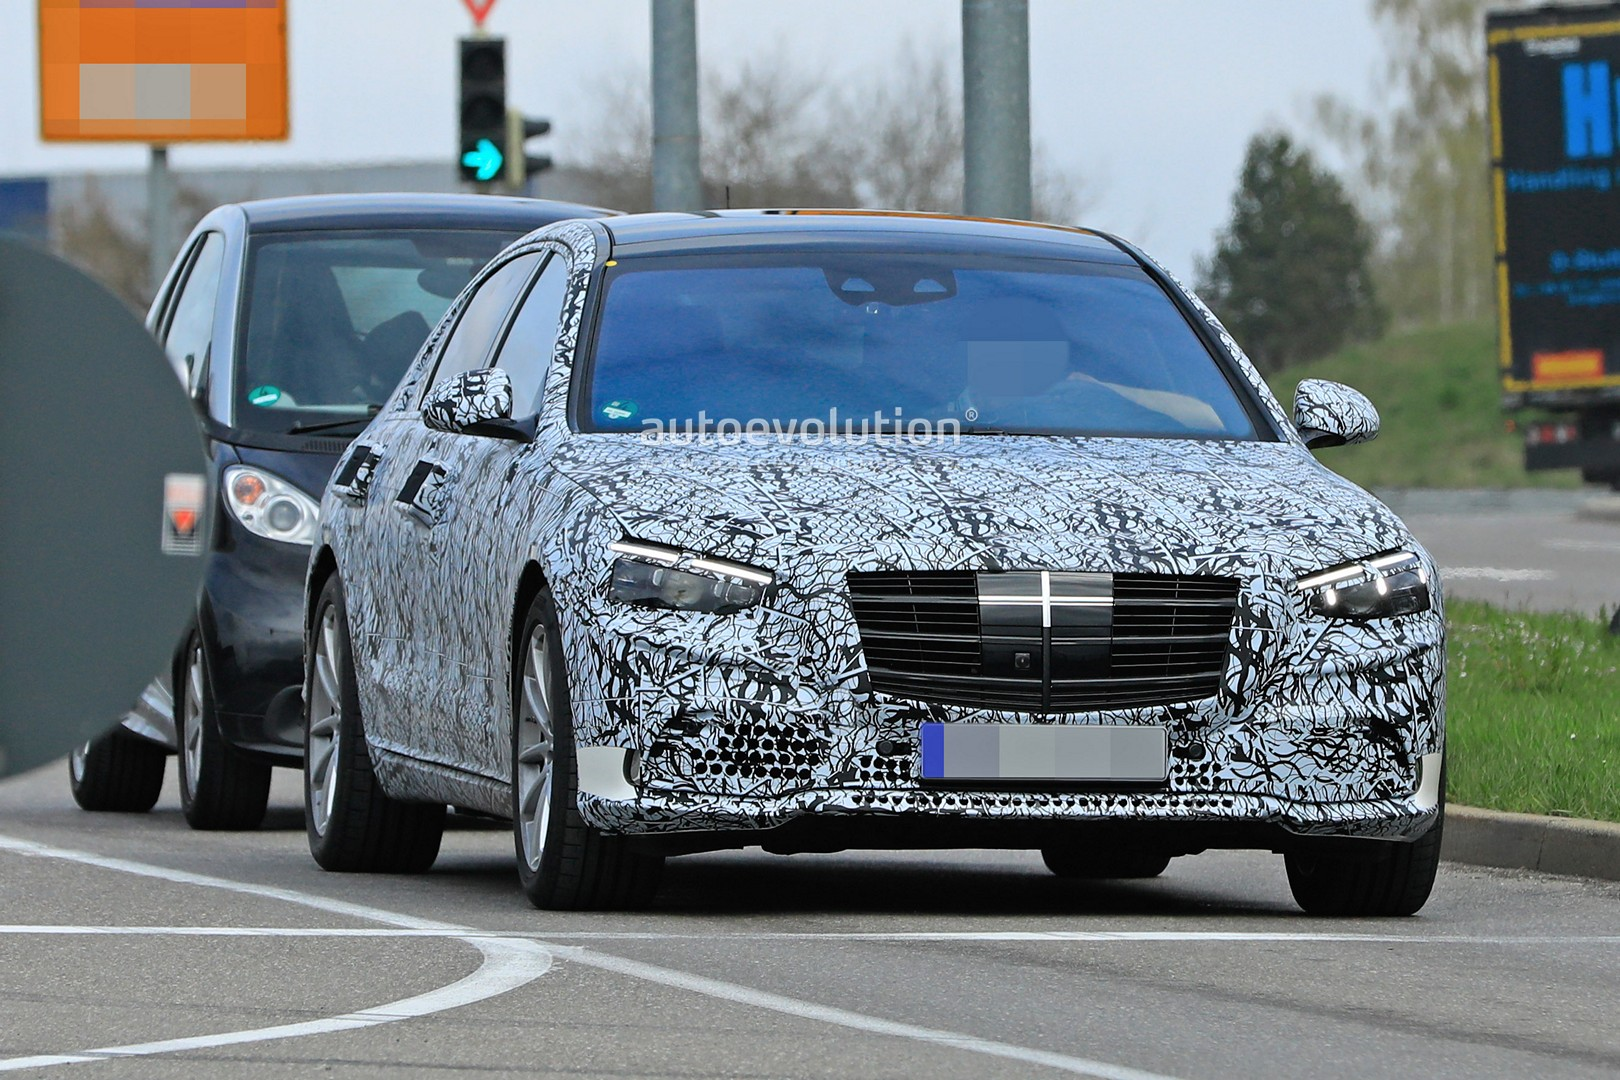 2020 mercedes s-class reveals new design for headlights and grille